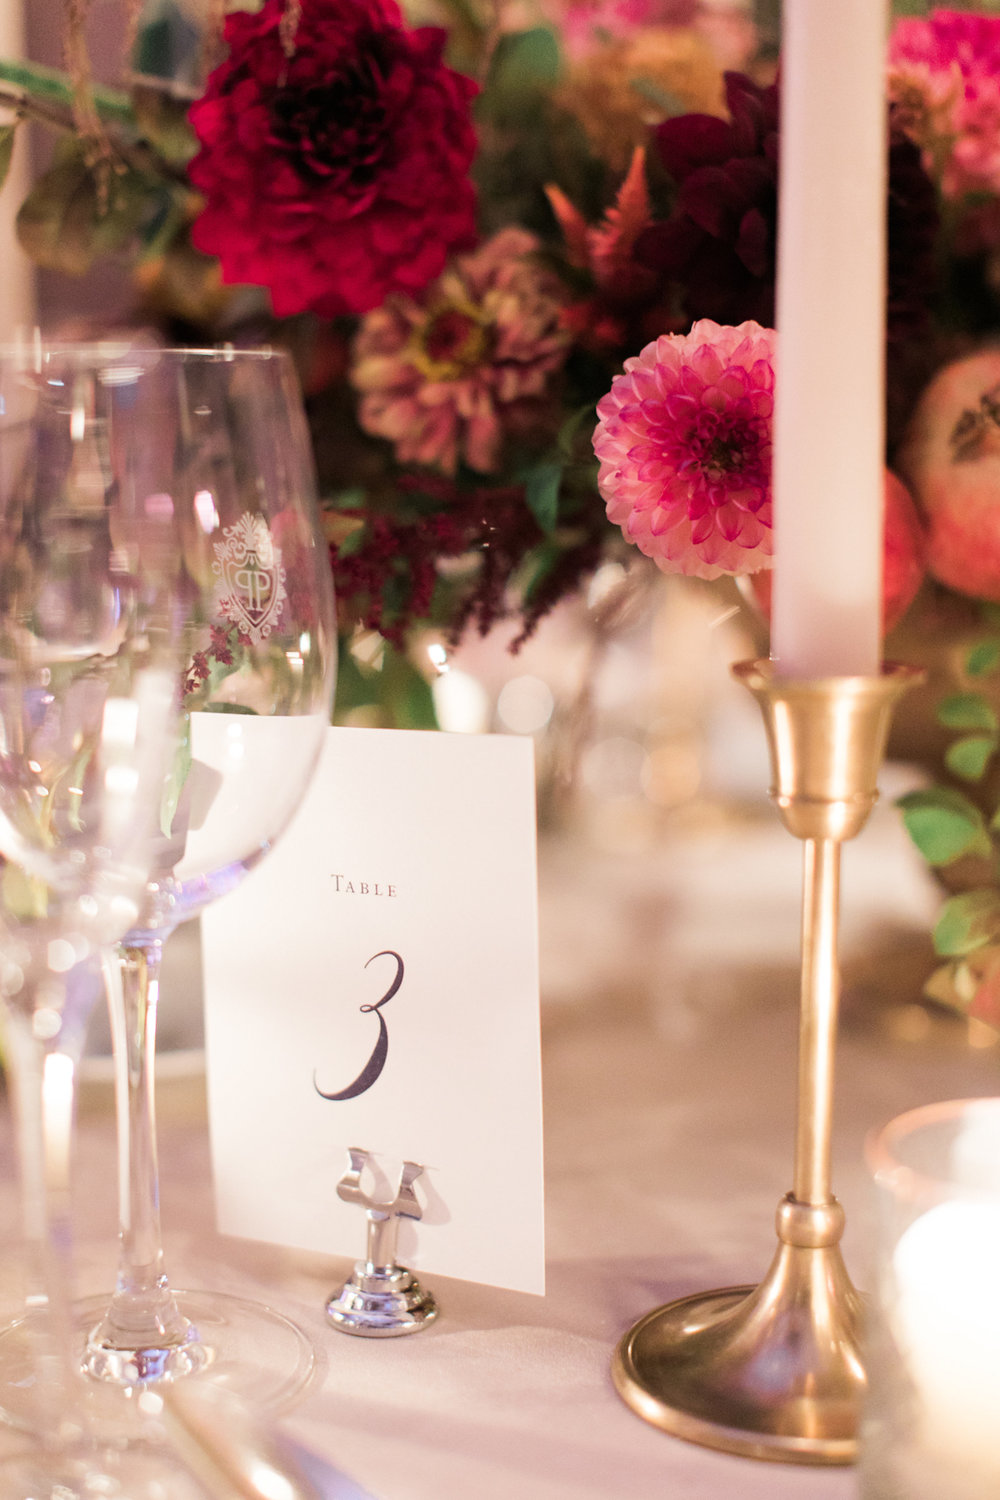 Plaza wedding table numbers